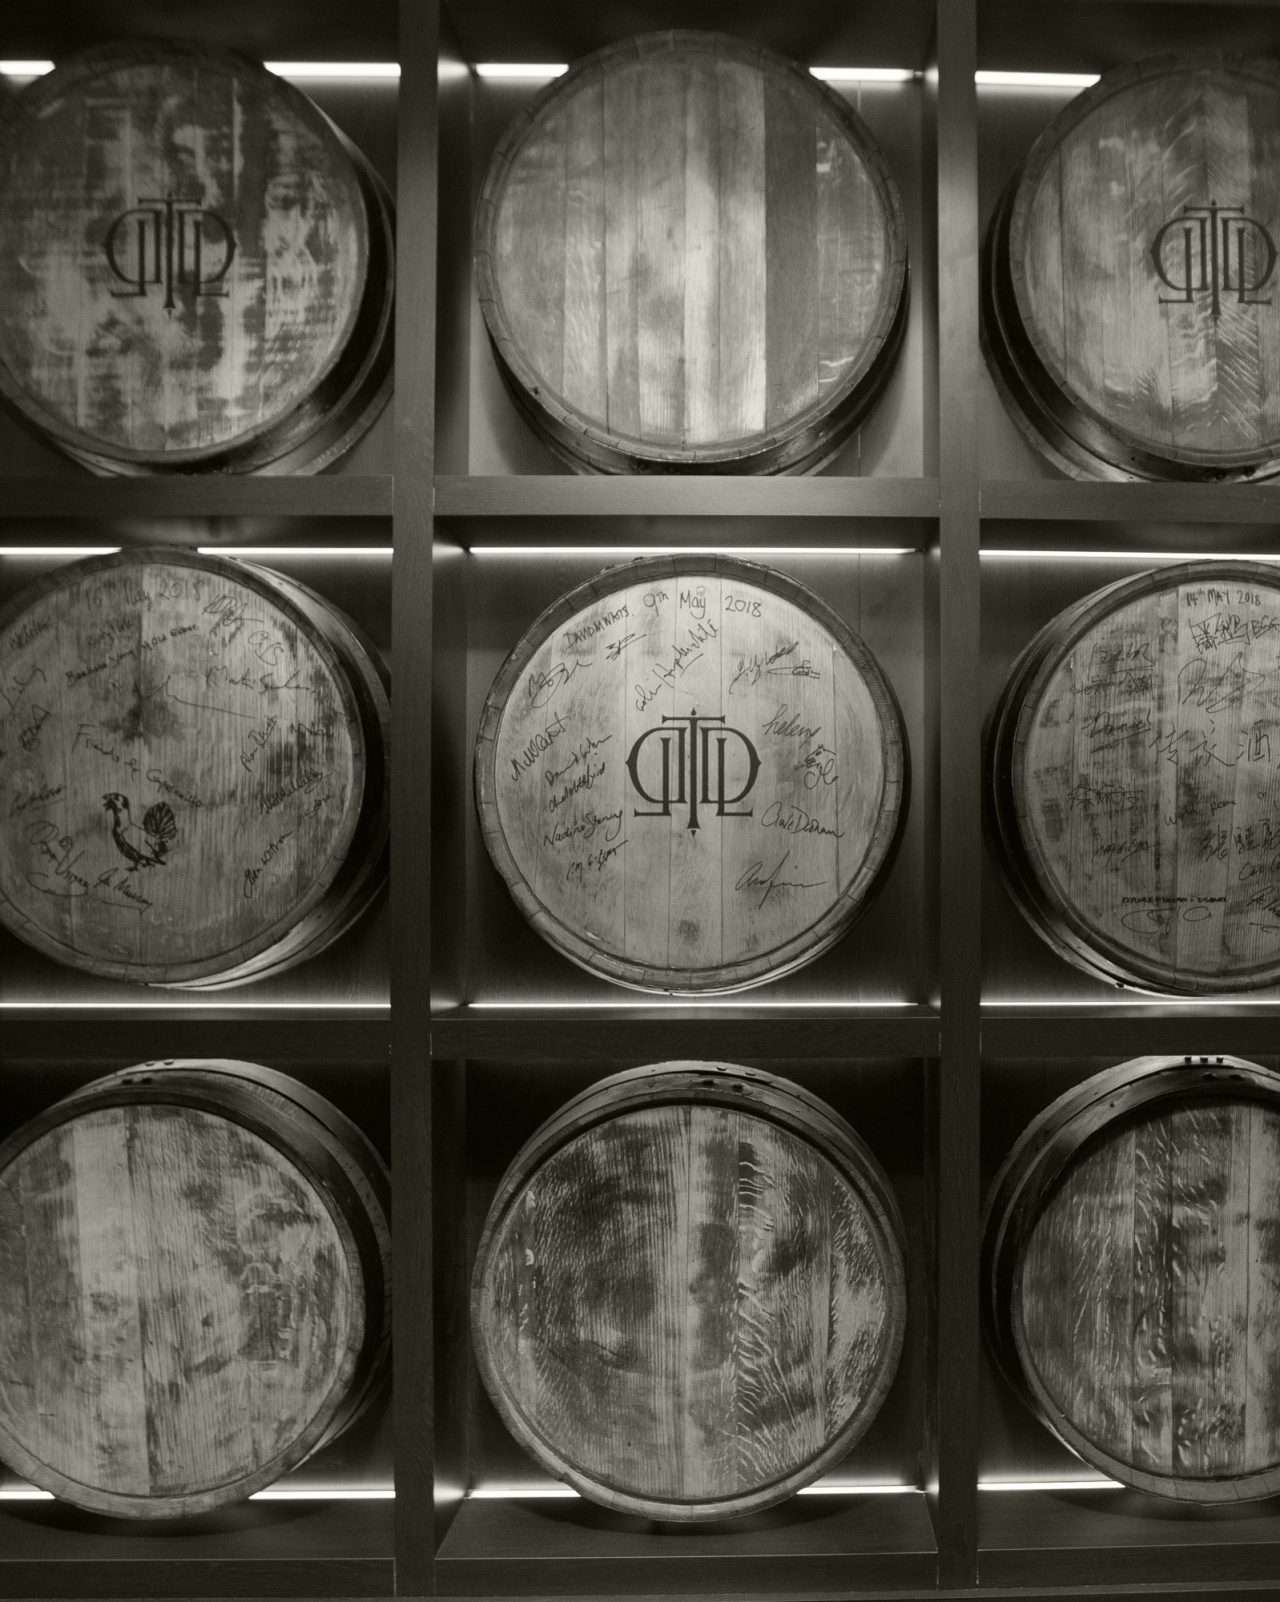 Black and white wall of Last Drop barrels